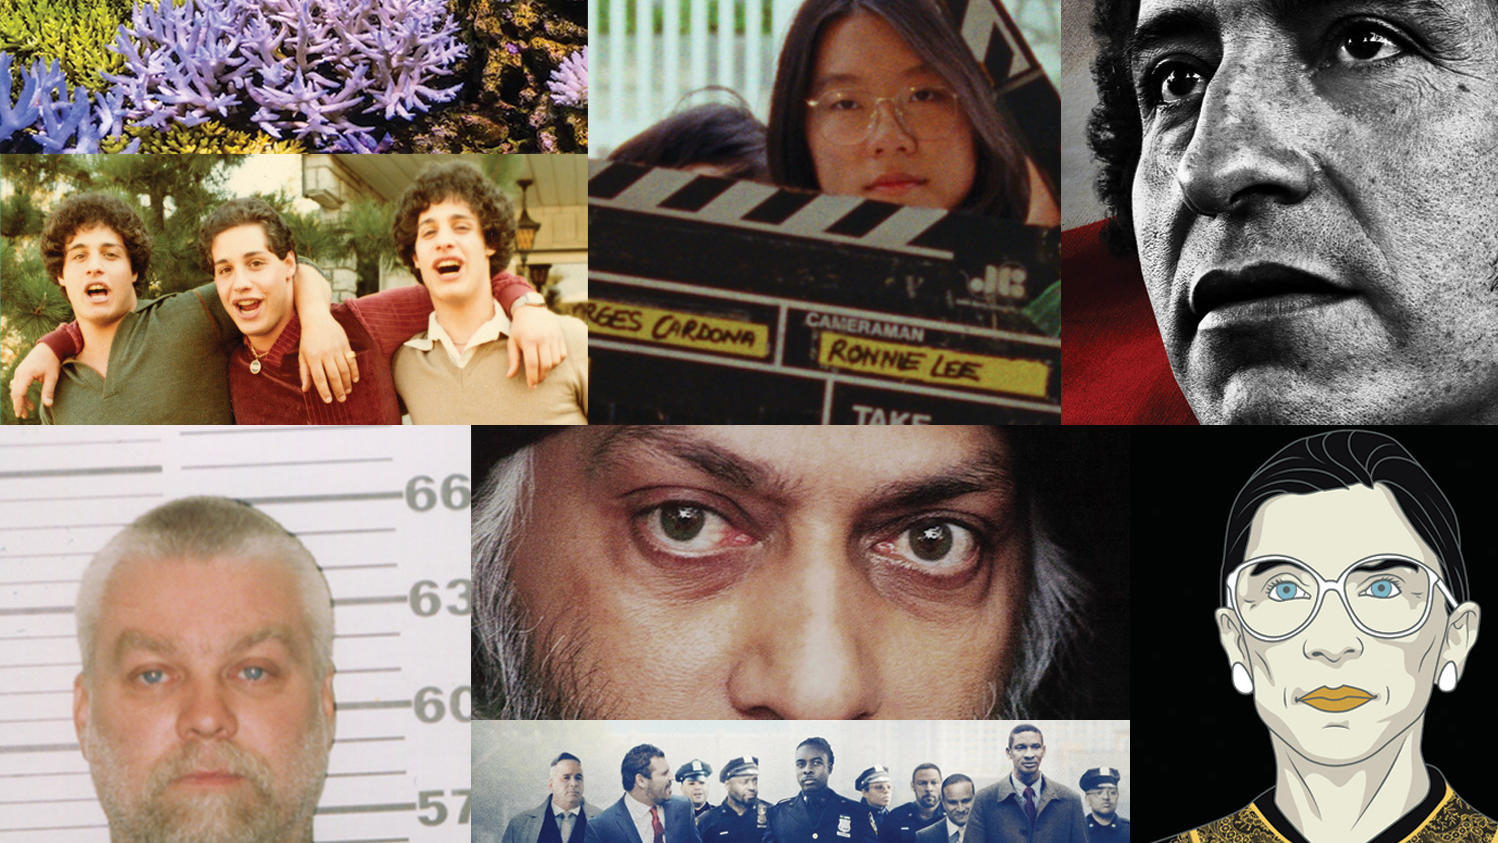 Documentaries made by Columbia alumni: Chasing Coral, Shirkers, ReMastered: ReMastered: Massacre at the Stadium, Three Identical Strangers, Wild Wild Country, RBG, Making a Murderer part 2, Crime + Punishment